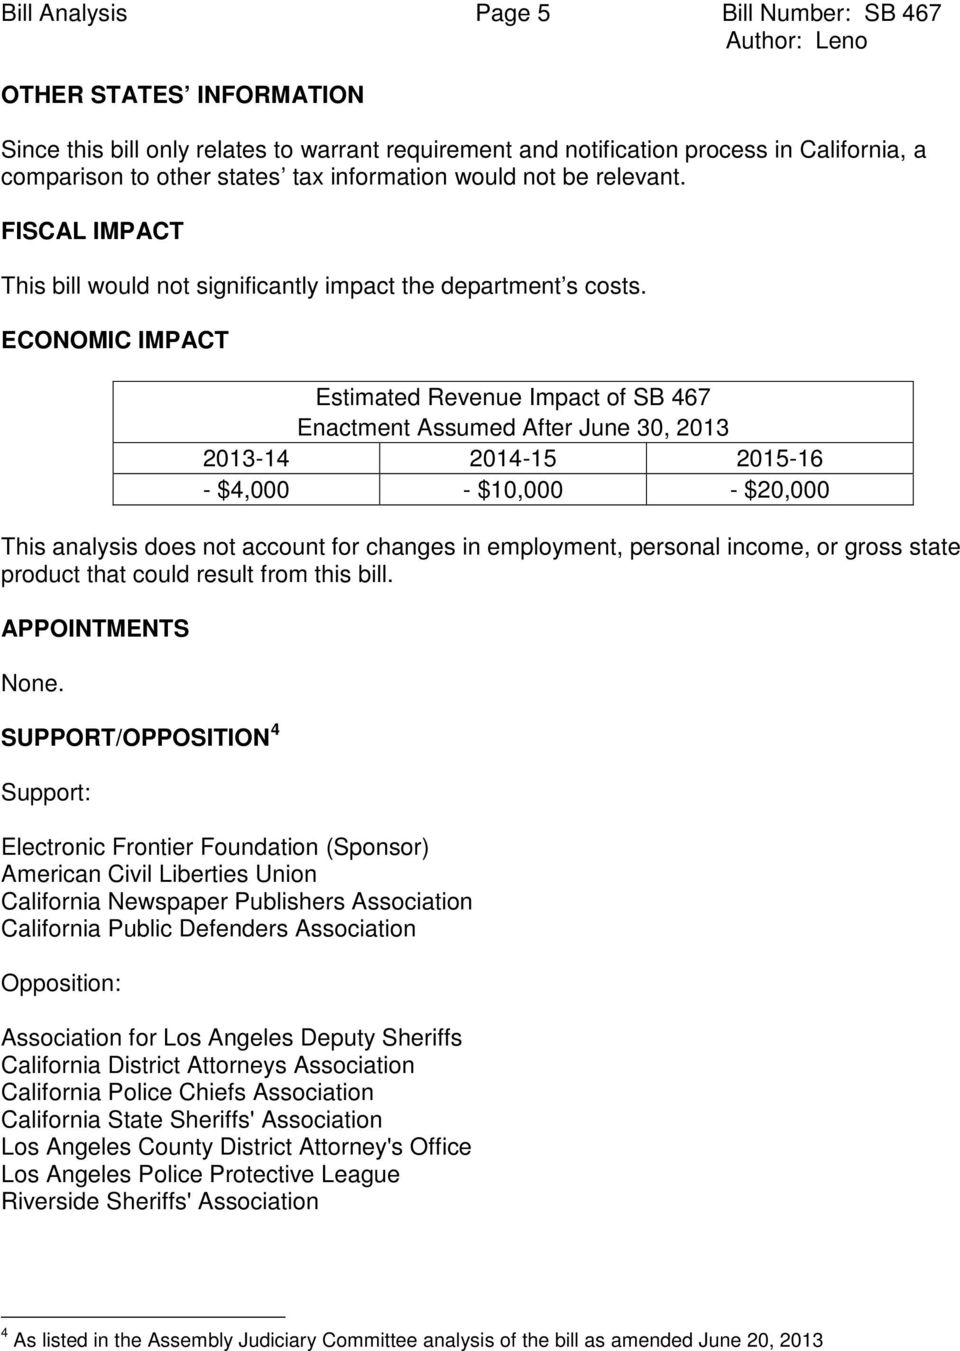 ECONOMIC IMPACT Estimated Revenue Impact of SB 467 Enactment Assumed After June 30, 2013 2013-14 2014-15 2015-16 - $4,000 - $10,000 - $20,000 This analysis does not account for changes in employment,